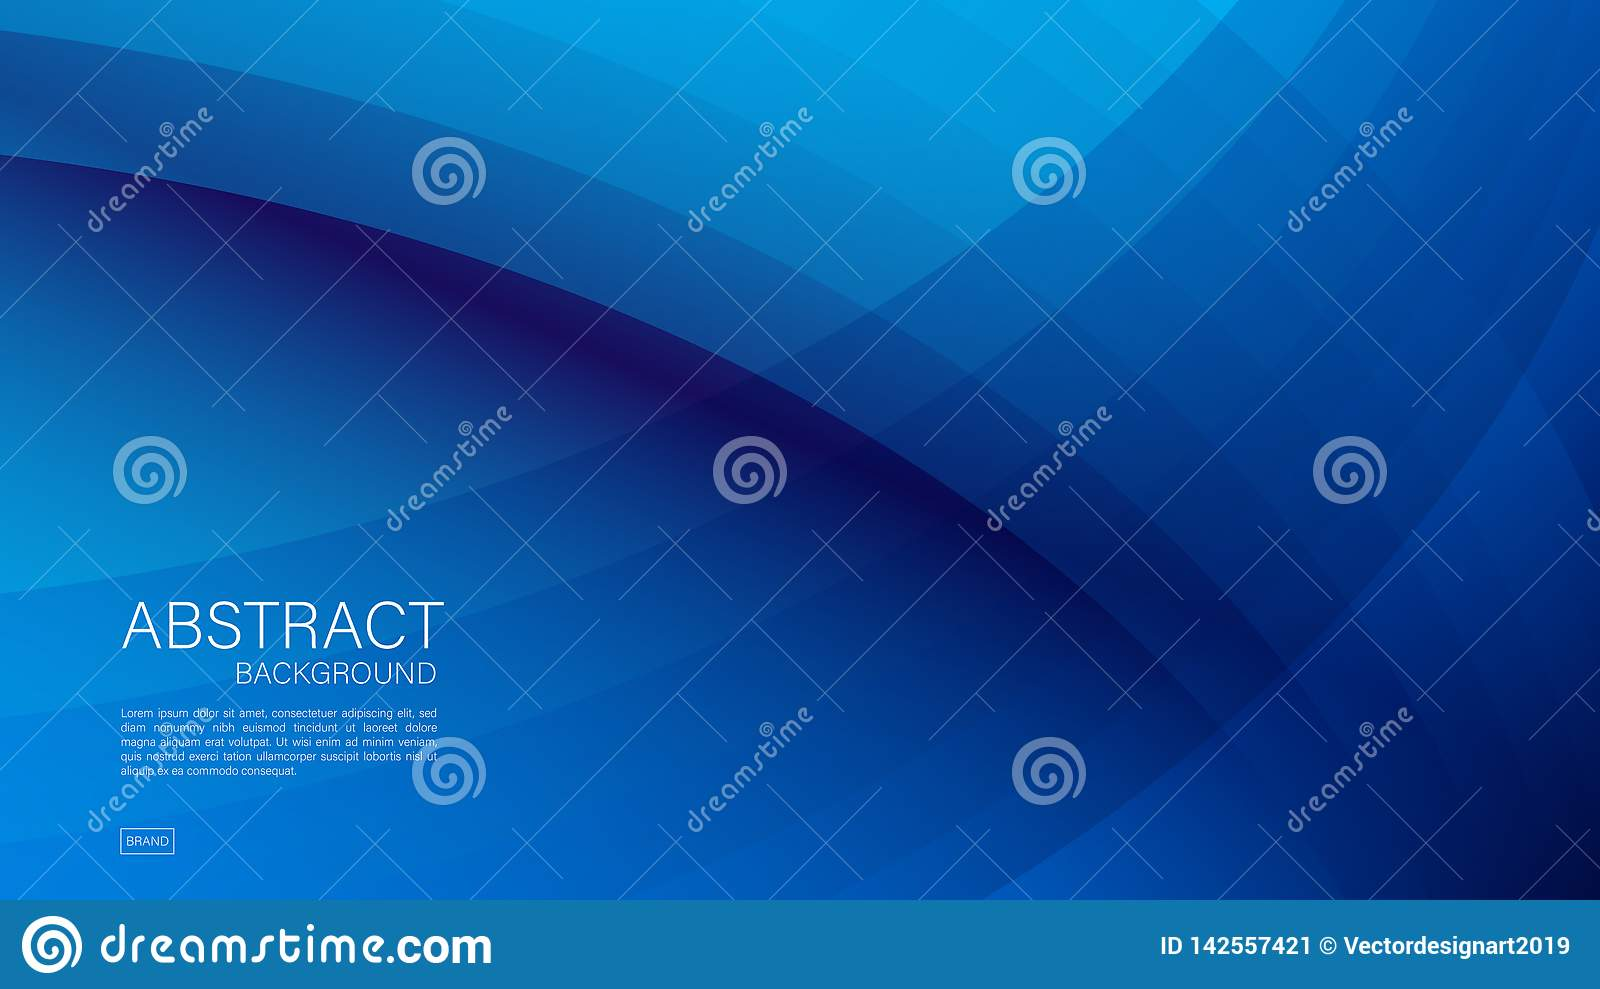 Blue abstract background, wave, Geometric vector, graphic, Minimal Texture, cover design, flyer template, banner, web page